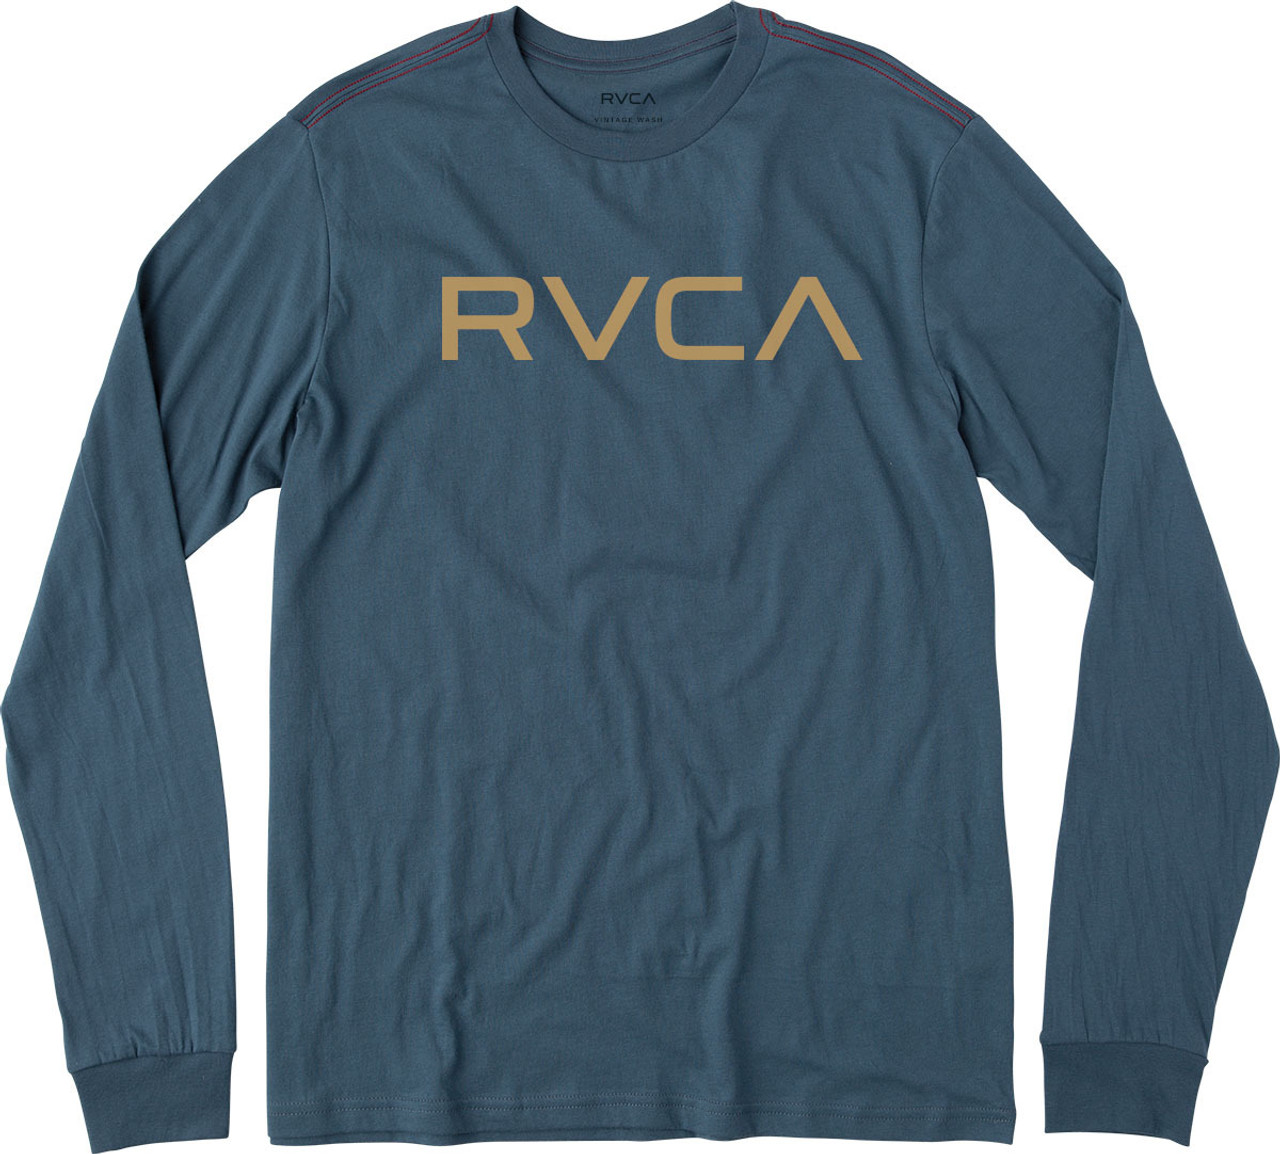 5fc9d93db RVCA Tee Shirt - Big RVCA LS - Dark Denim - Surf and Dirt